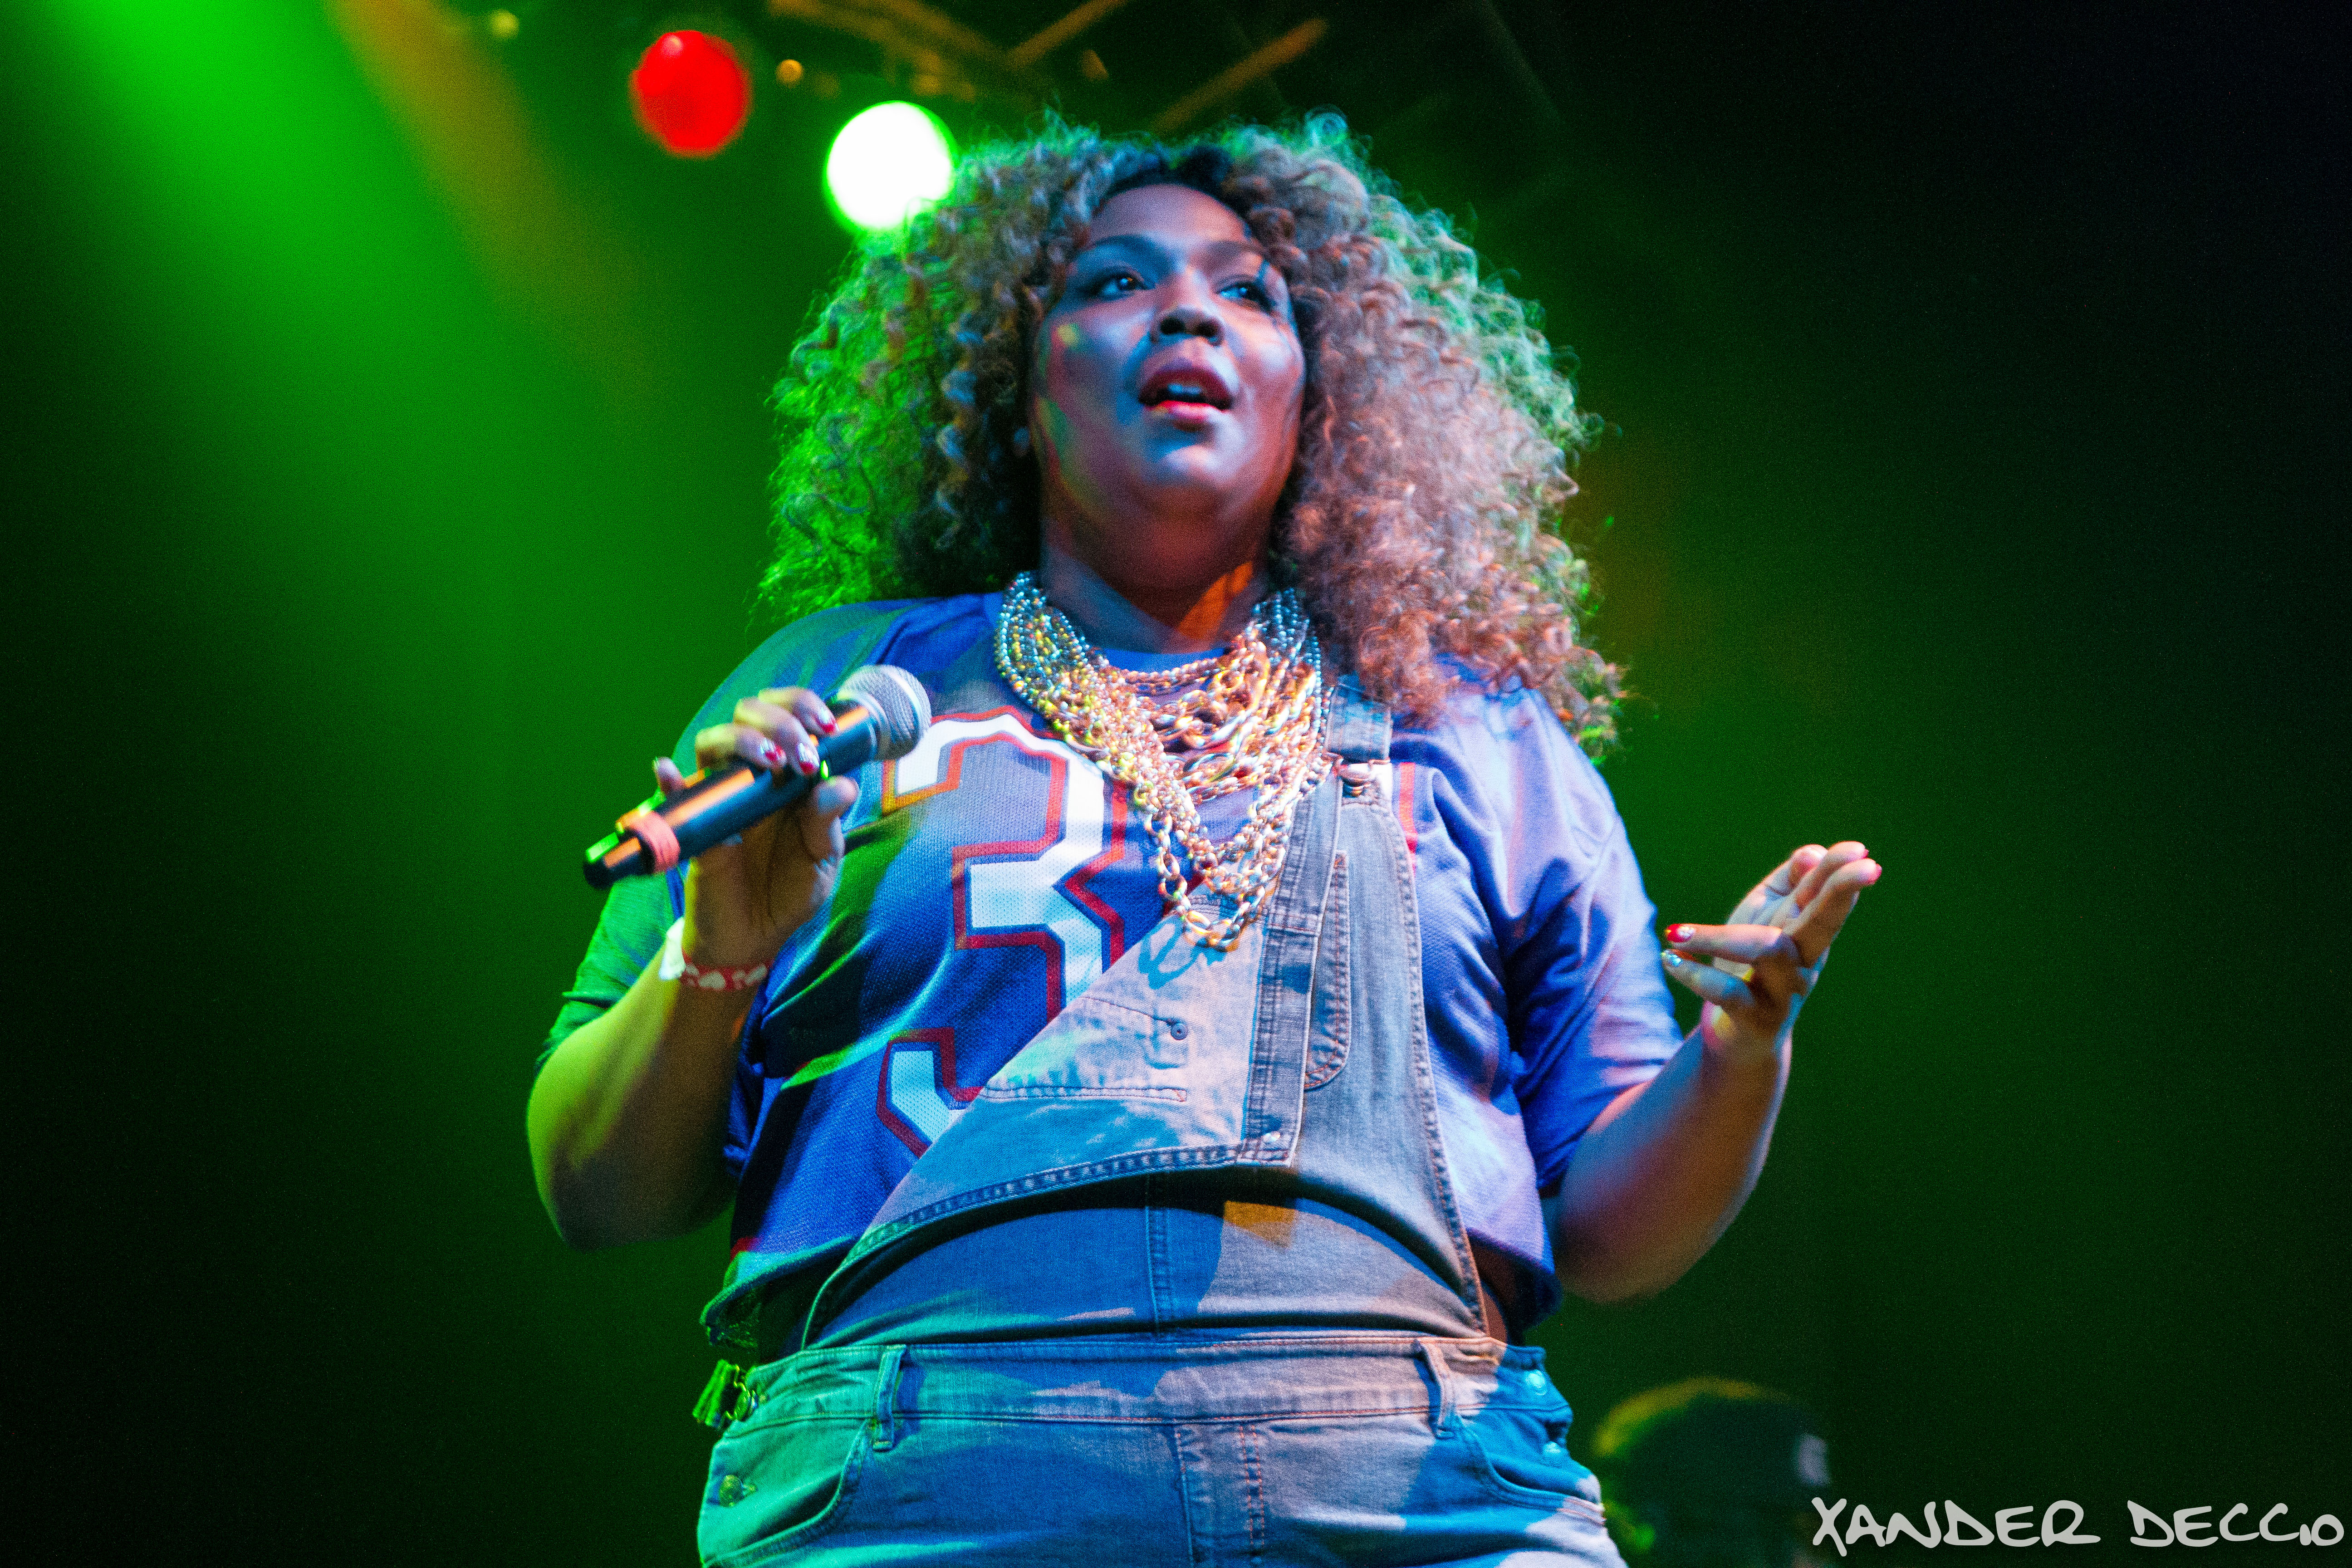 Lizzo @ The Knitting Factory (Photo By Xander Deccio)